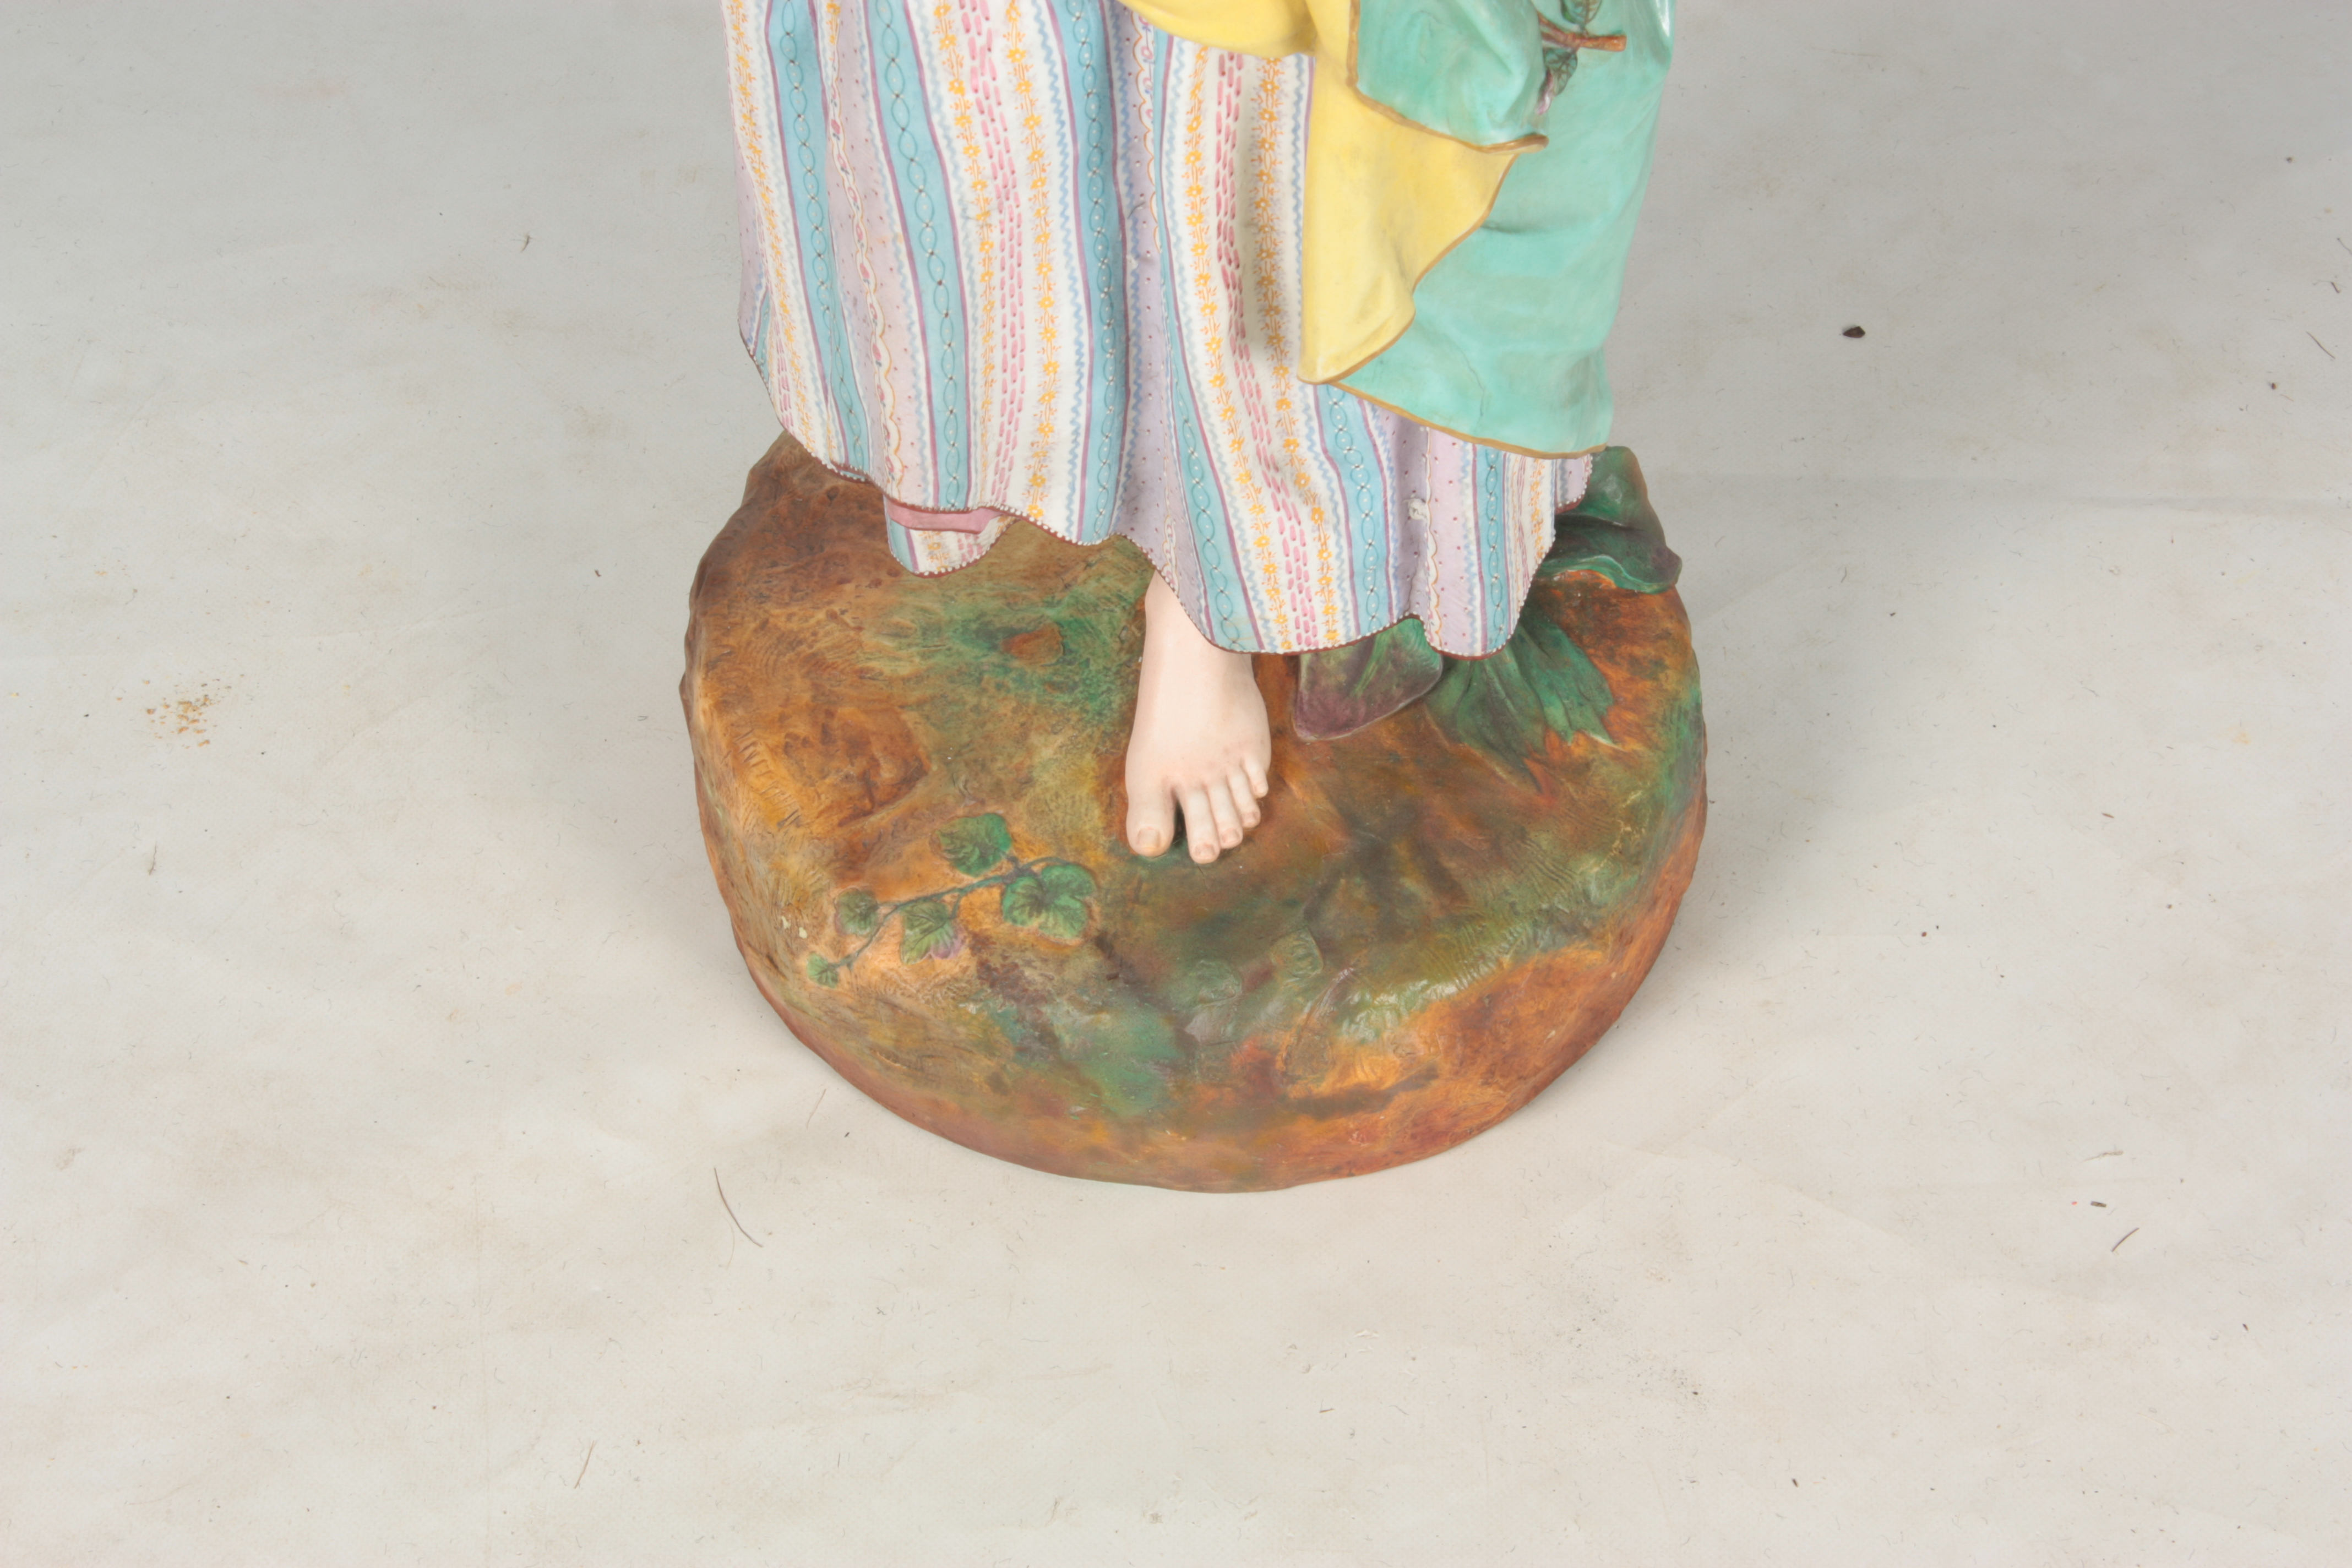 A 19TH CENTURY MASSIVE CONTINENTAL POLYCHROME STANDING BISQUE FIGURE OF A YOUNG LADY on a - Image 2 of 4